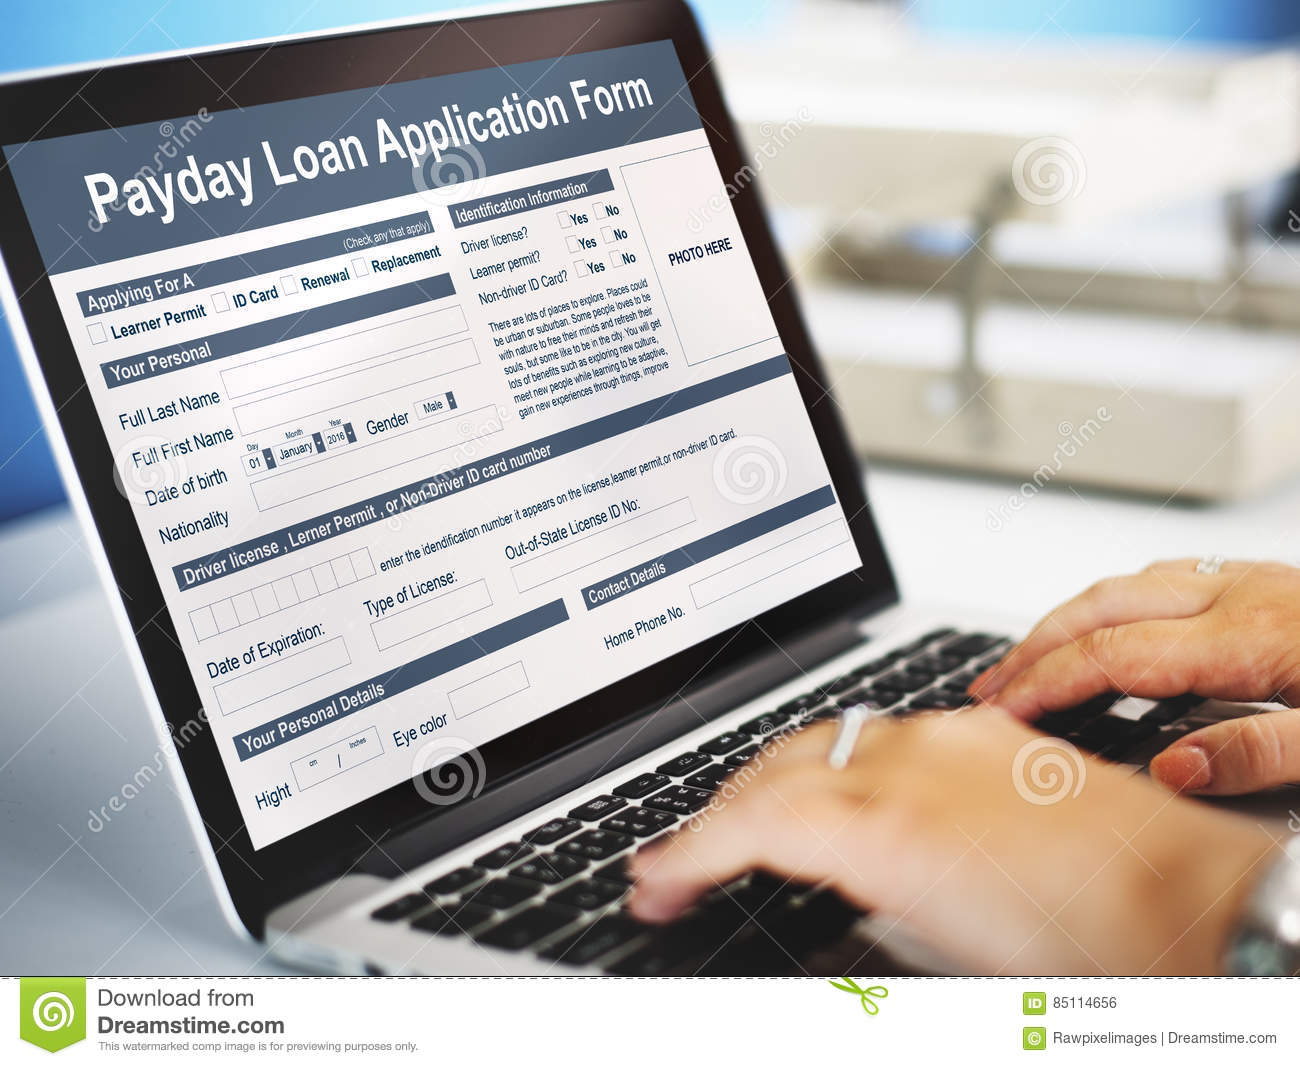 Payday Loan Application Form Salary Debt Concept Stock Photo Image Of Borrowing Bookkeeping 85114656